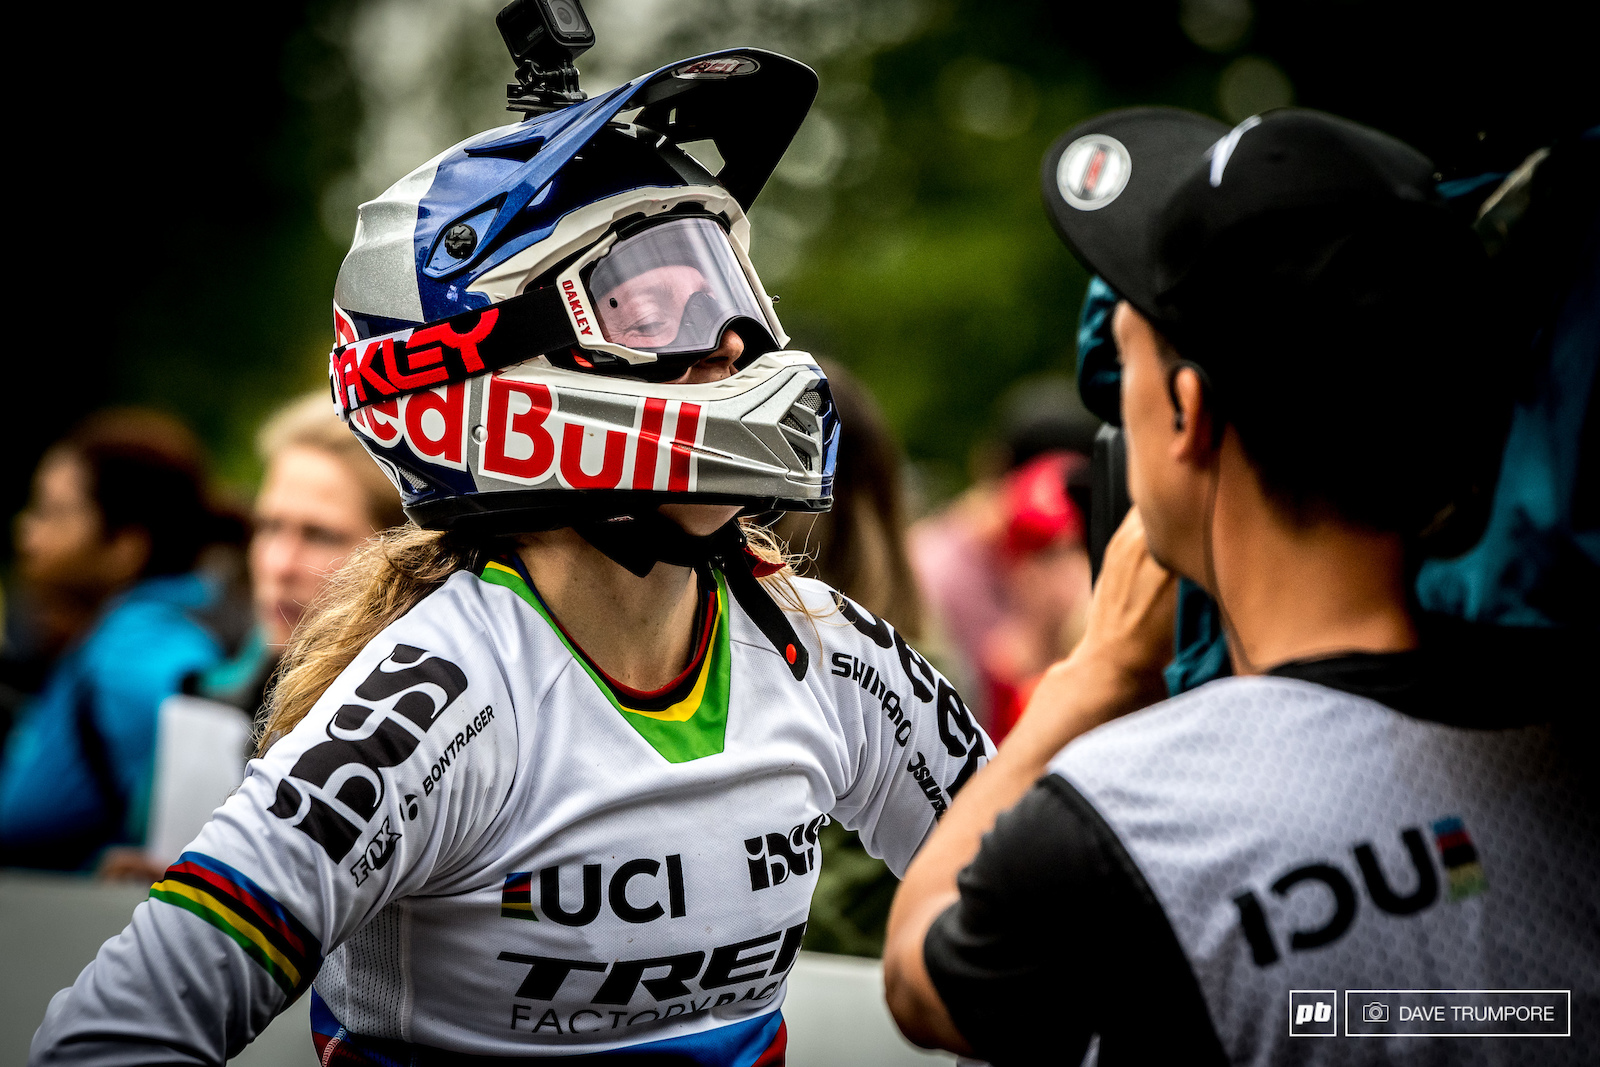 Rachel Atherton relieved to be in one piece after escaping what looked to be a massive crash in her final run. 5th place and healthy enough to battle another day.